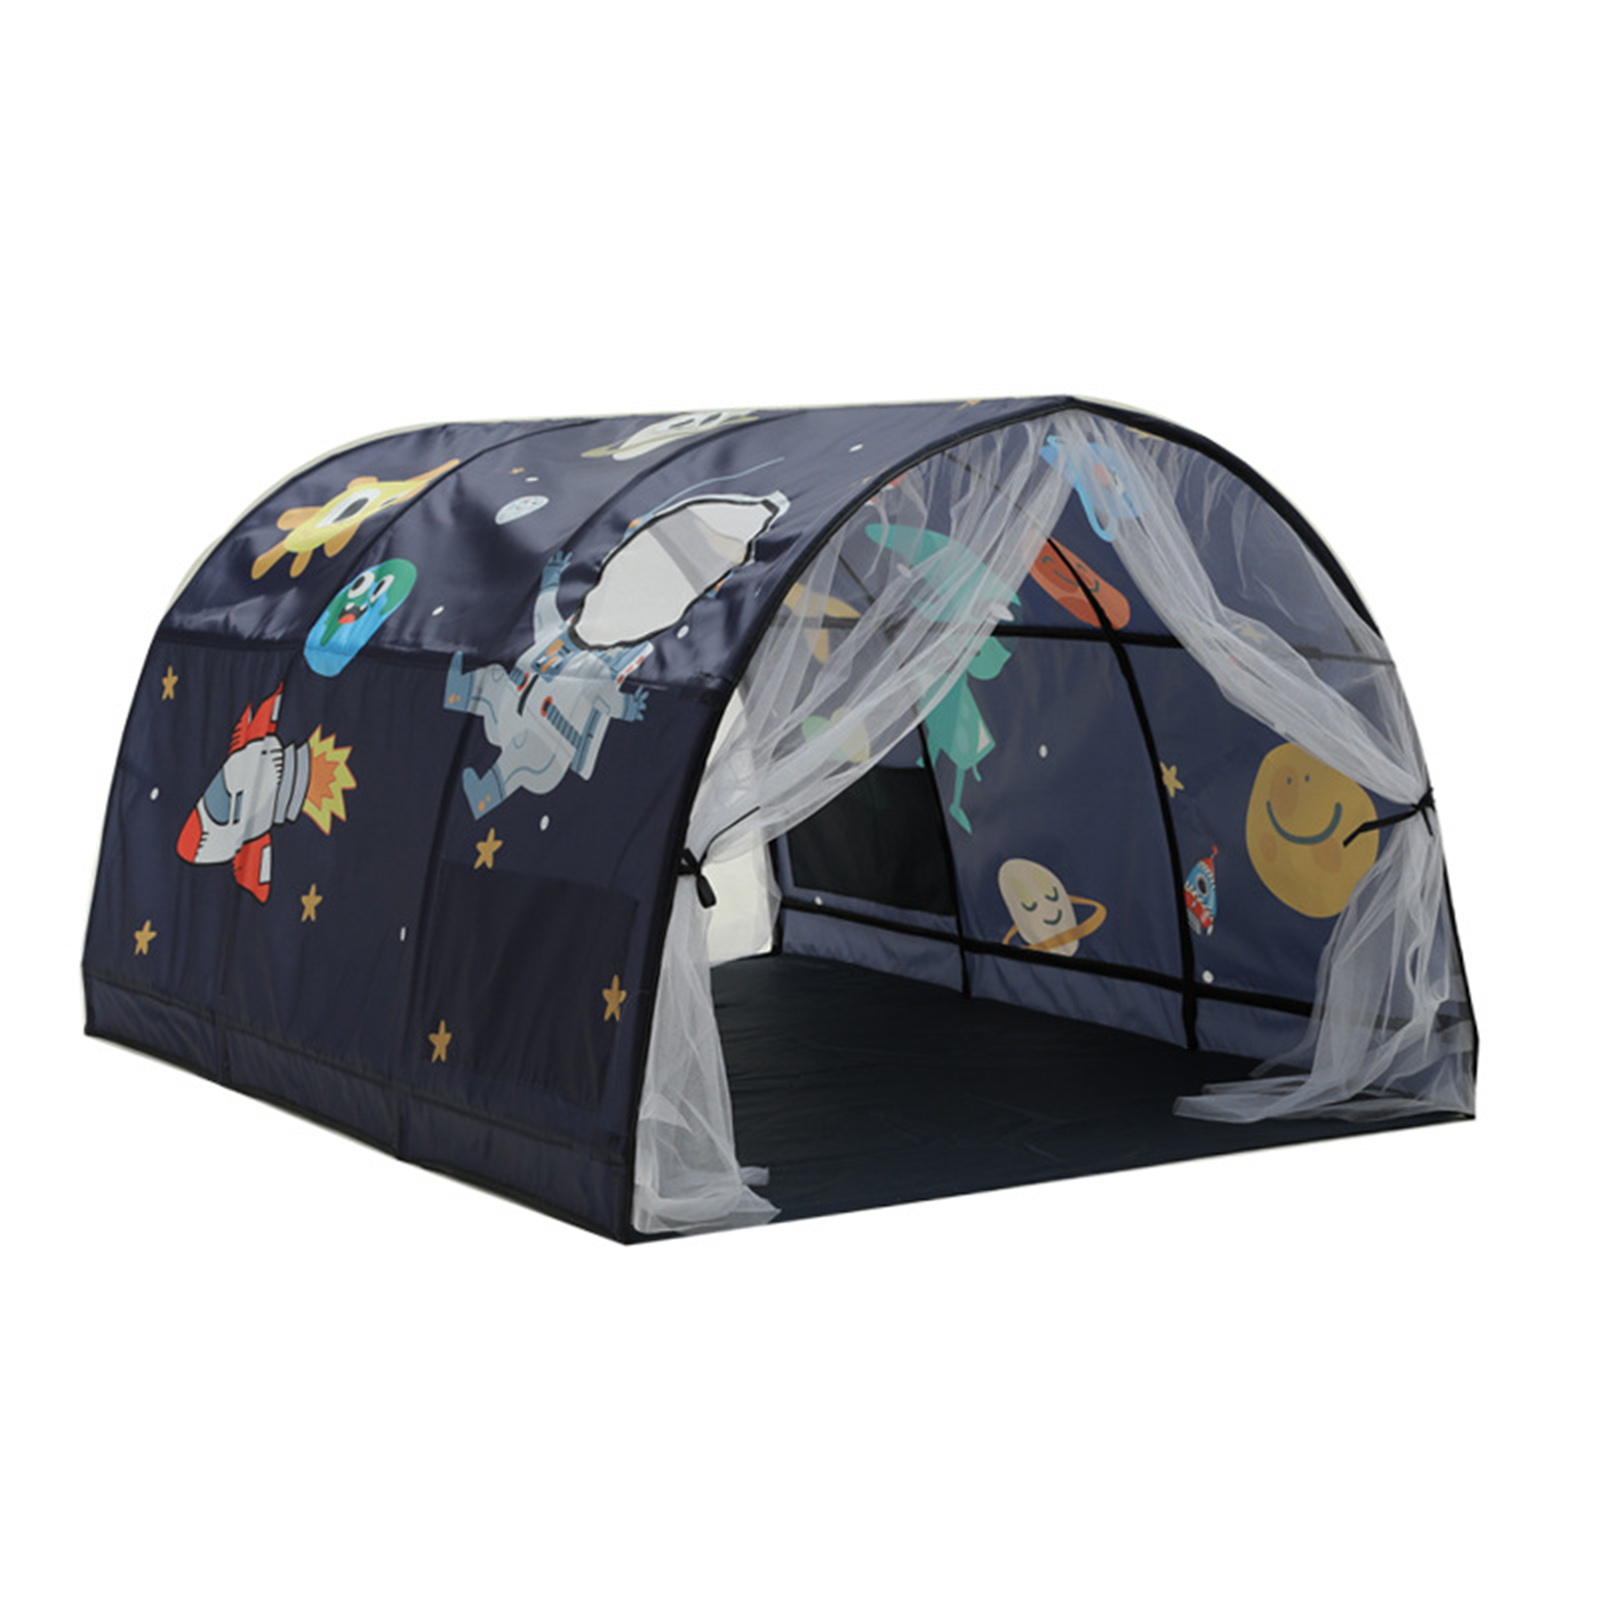 Bed Canopy Dream Kids Play Tents Playhouse Privacy Space Boys Girls Toddlers Pop Up Portable Frame Curtains Bed Tent